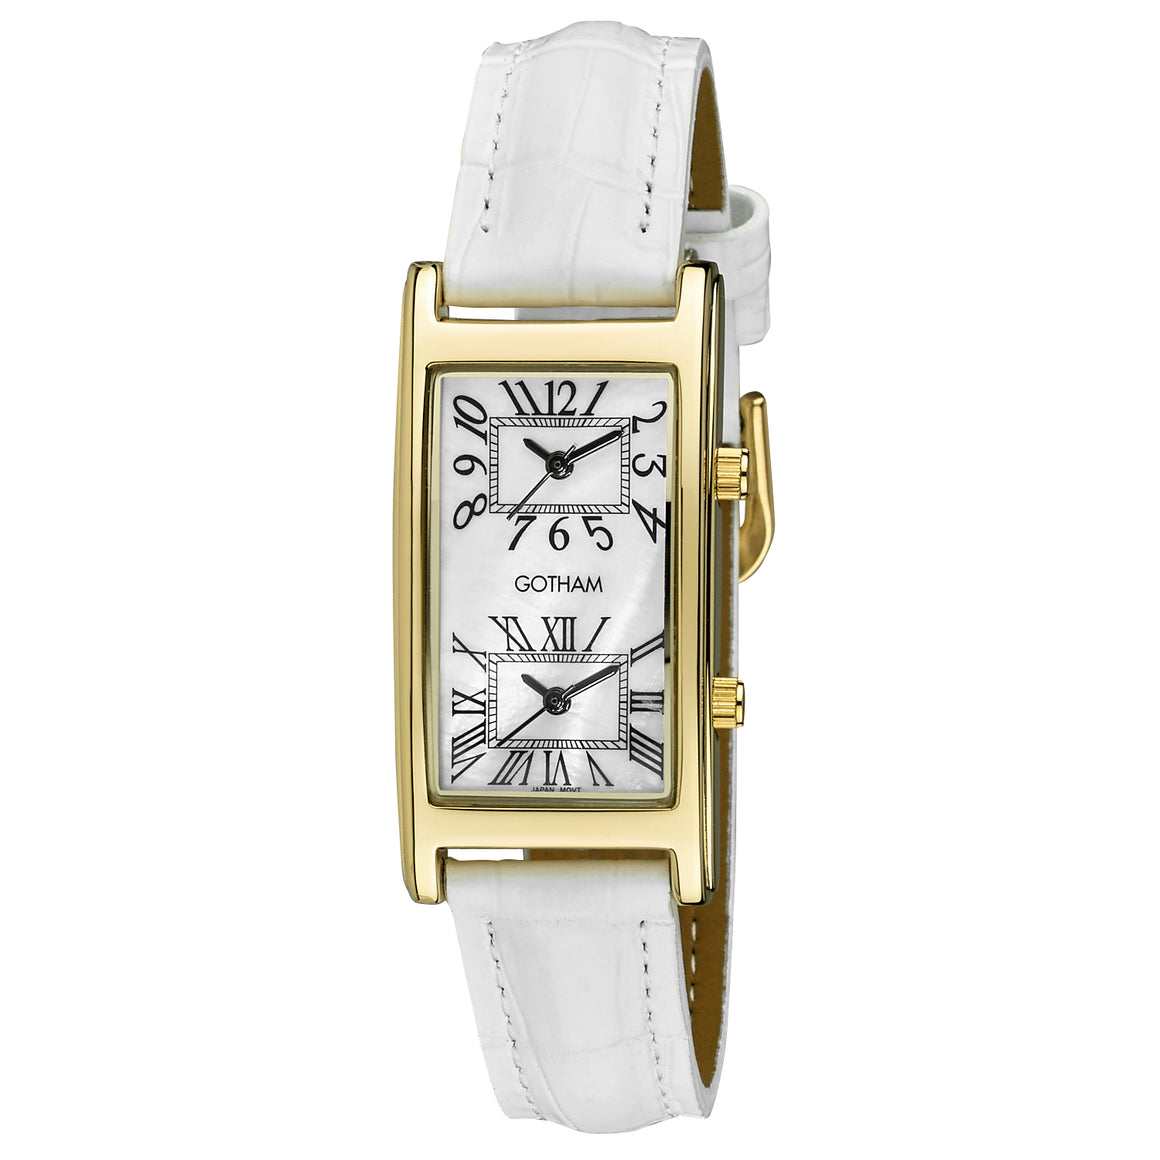 Gotham Woman's Gold-Tone Dual Time White Leather Strap Watch # GWC15090GWH - Gotham Watch